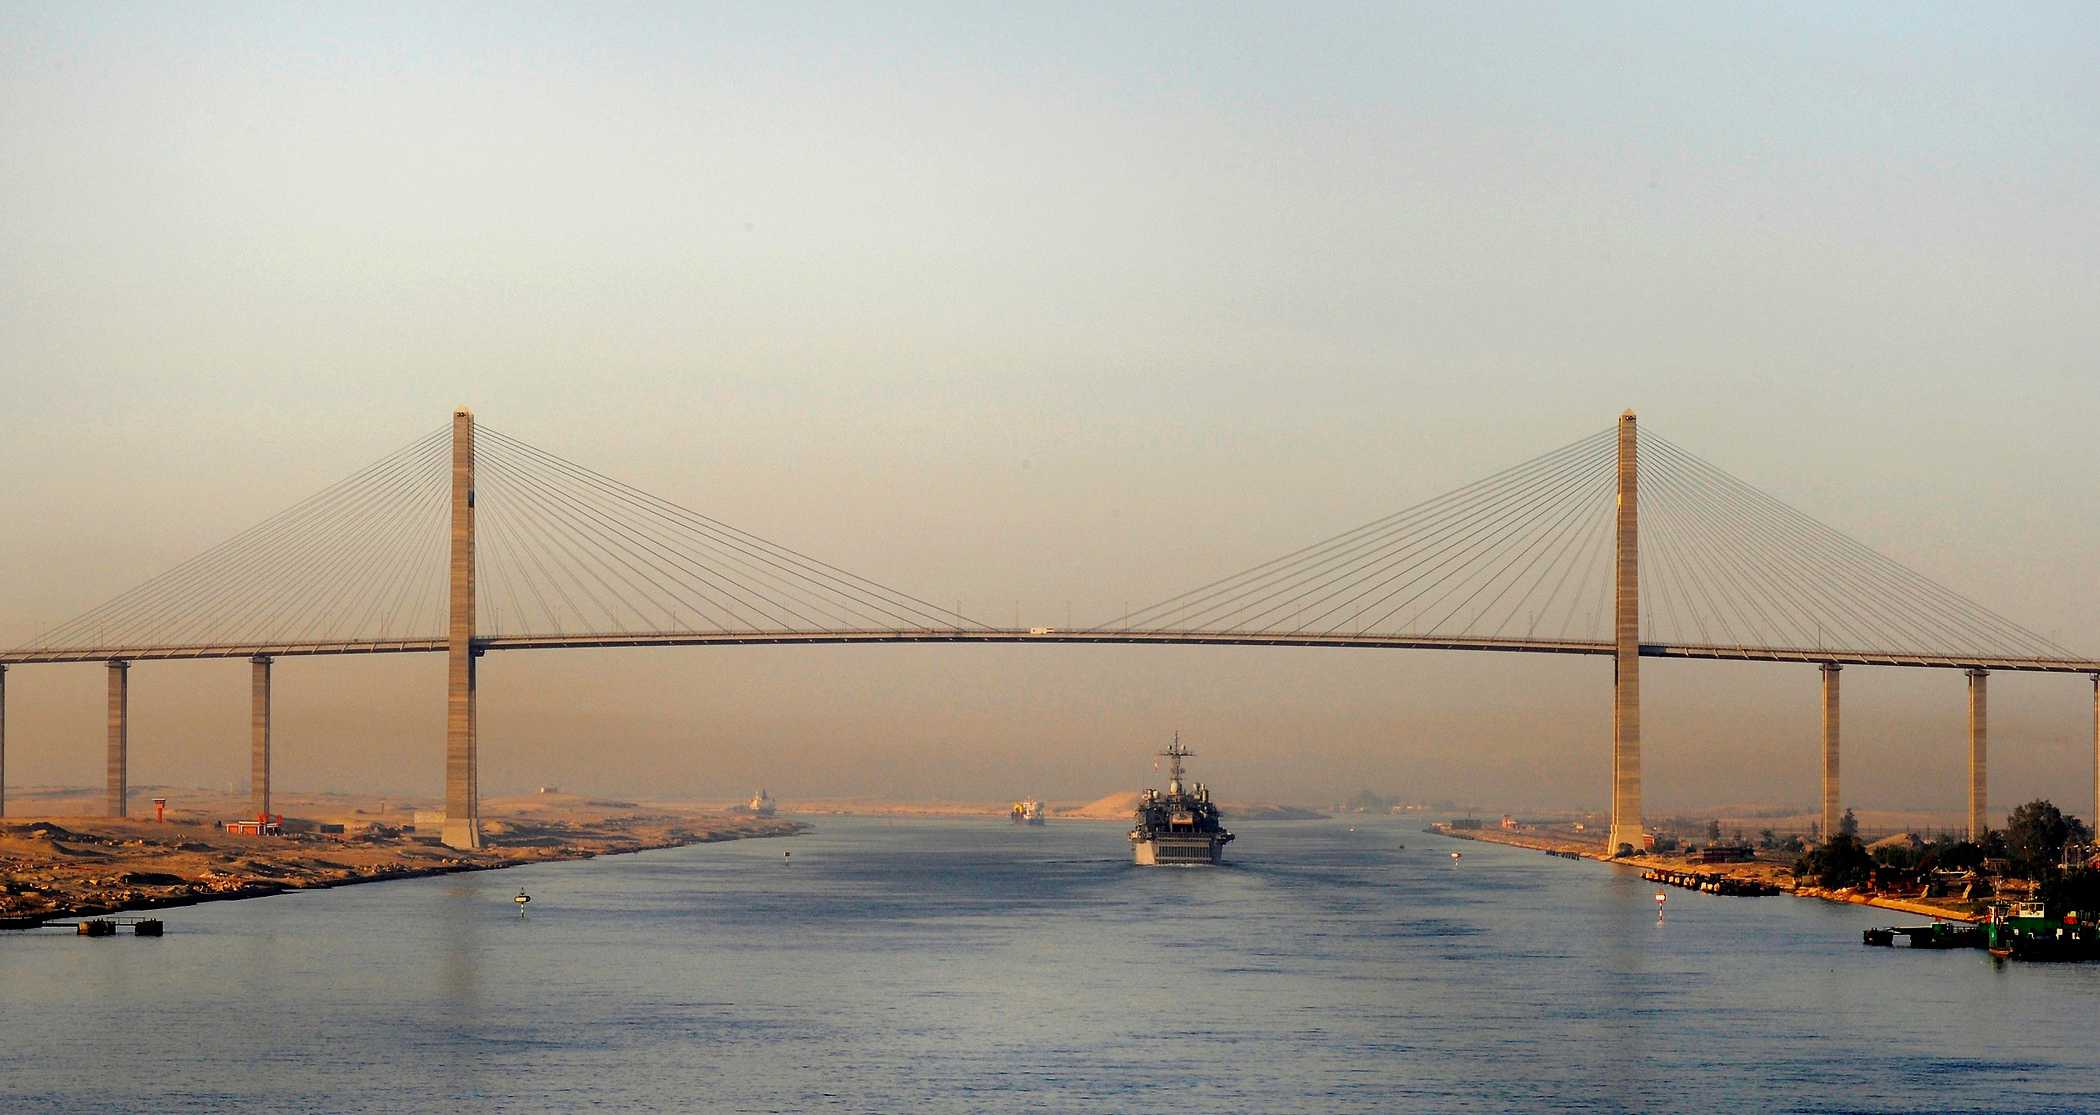 Egypt set to re-open bridge over Suez Canal